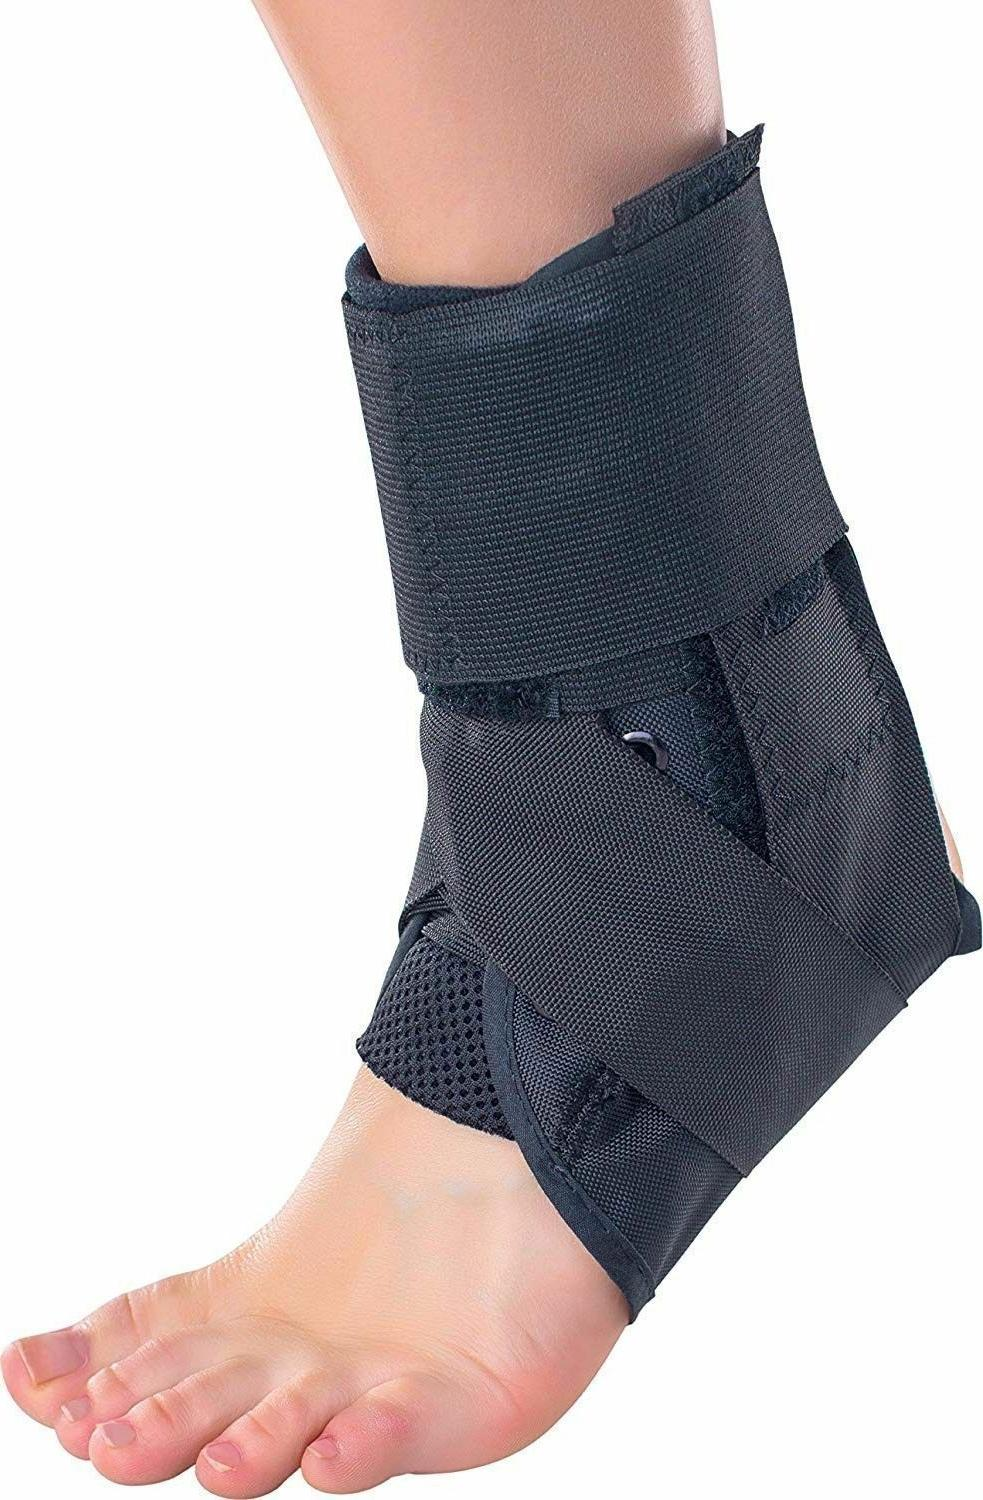 stabilized ankle support brace lace up stabilized